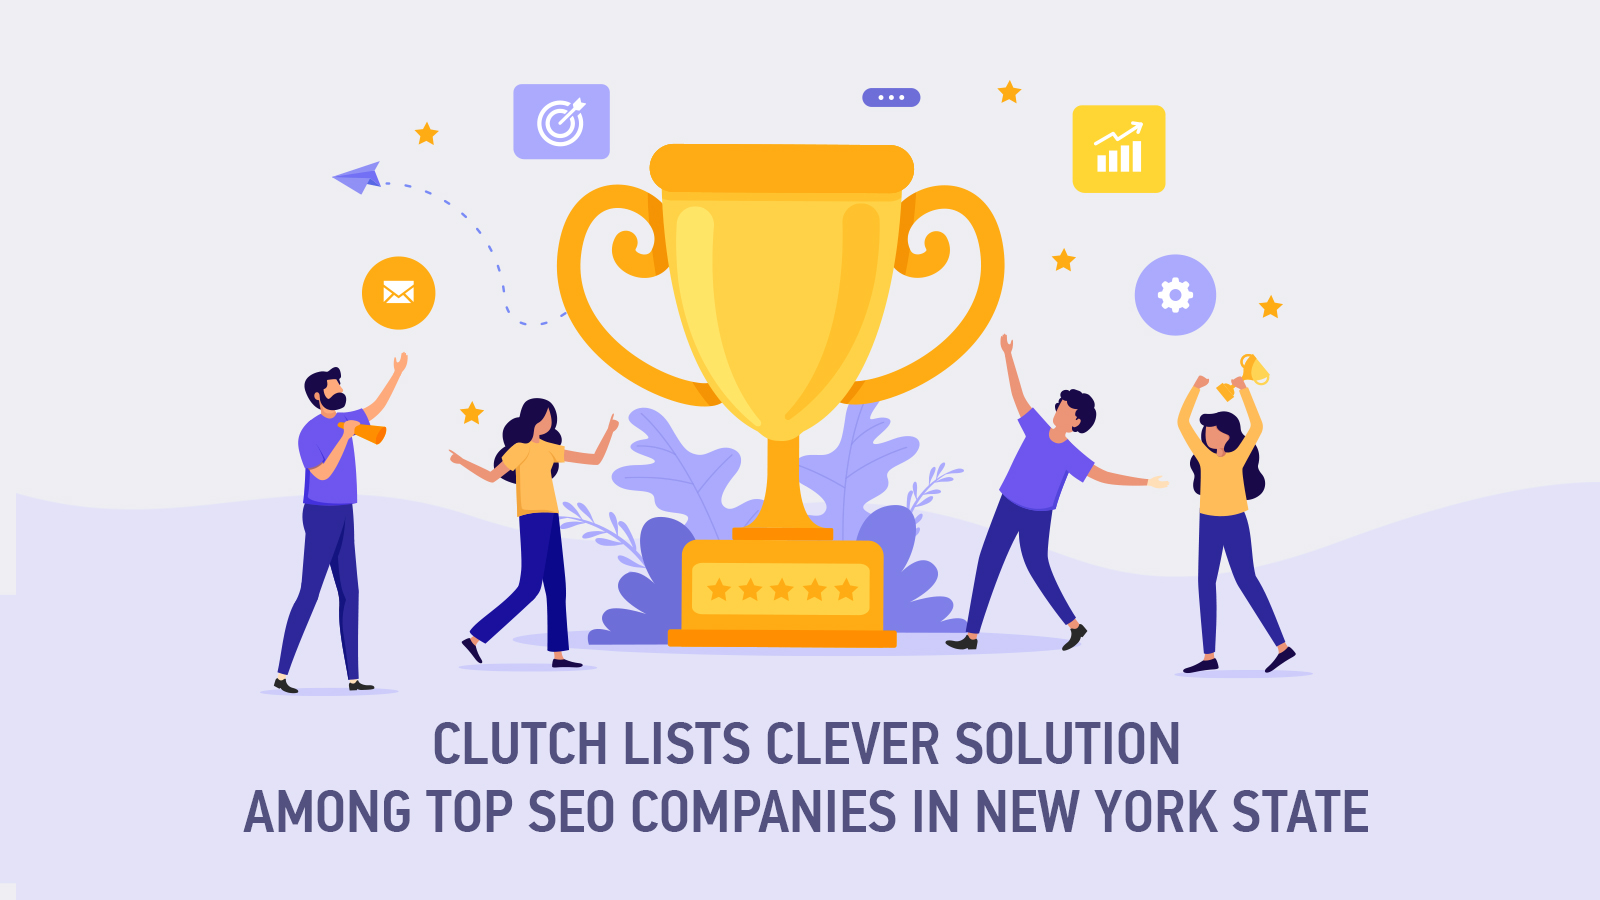 Clever Solution among Top SEO Companies in New York State